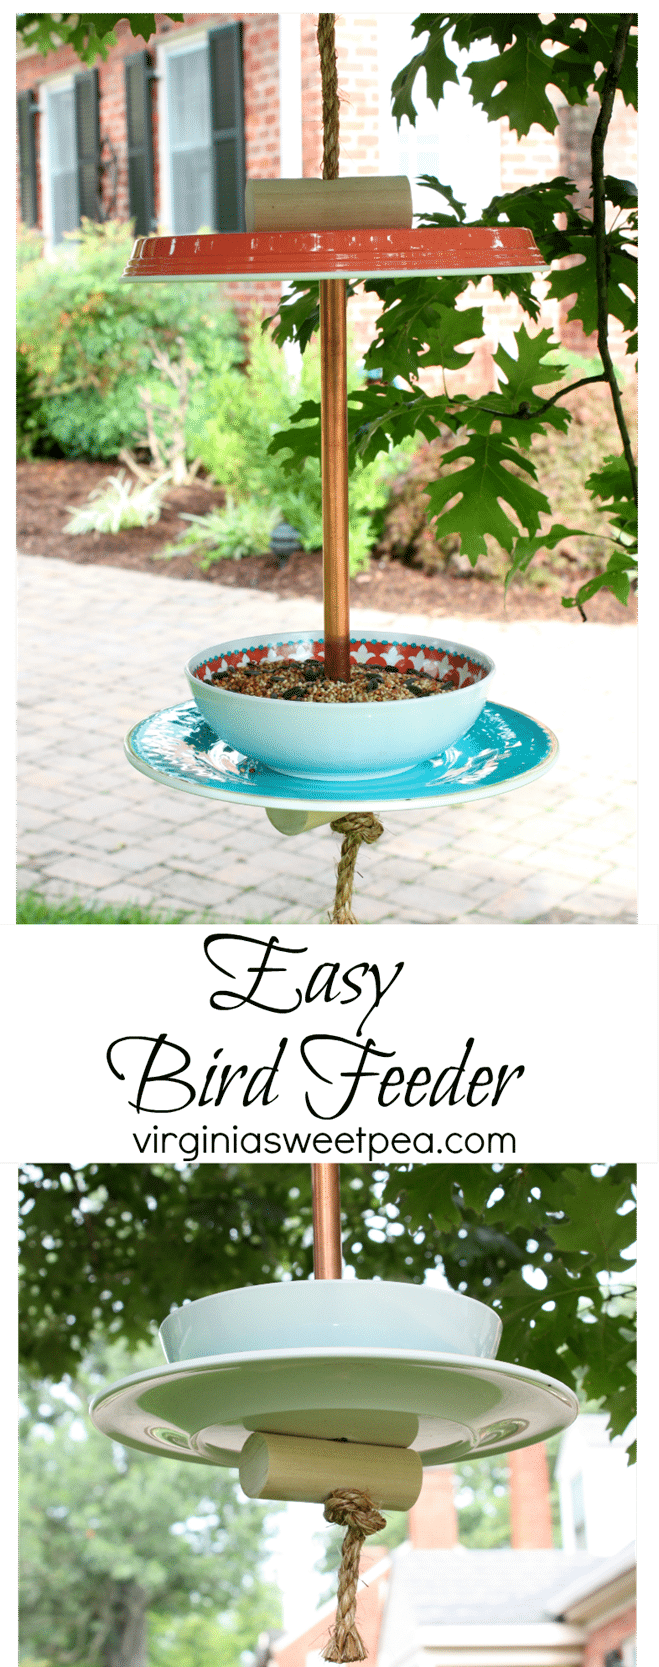 Learn how to make an easy bird feeder with plastic dinnerware. This is an easy DIY. Get the full tutorial at virginiasweetpea.com.